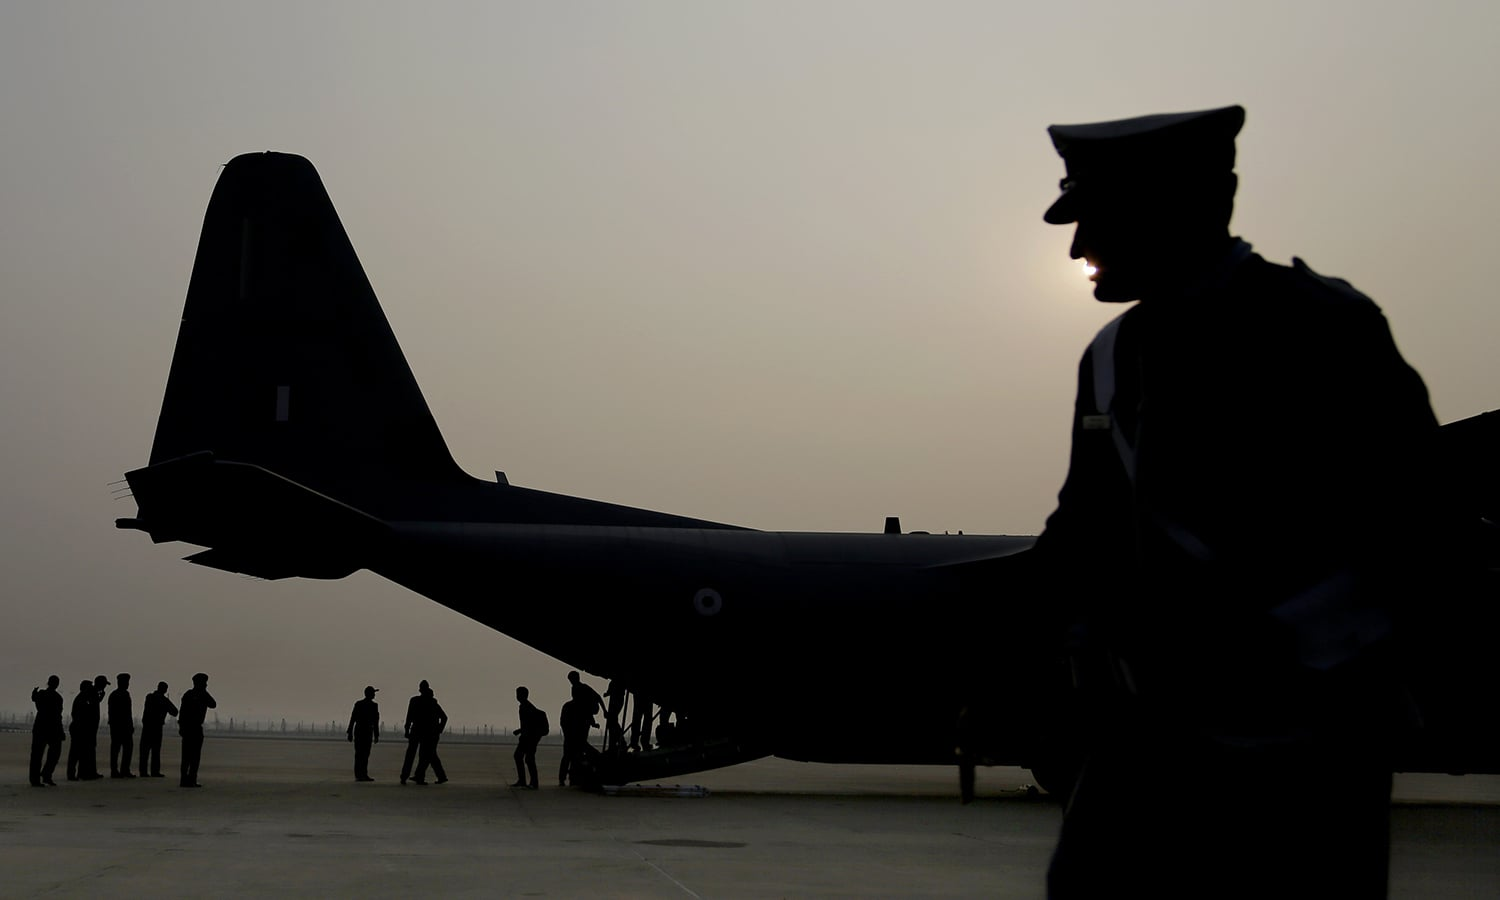 An Indian Air Force personnel is silhouetted as people who were stranded in Chennai due to floods deplane in New Delhi after being evacuated by the air force Thursday, Dec. 3, 2015. — AP